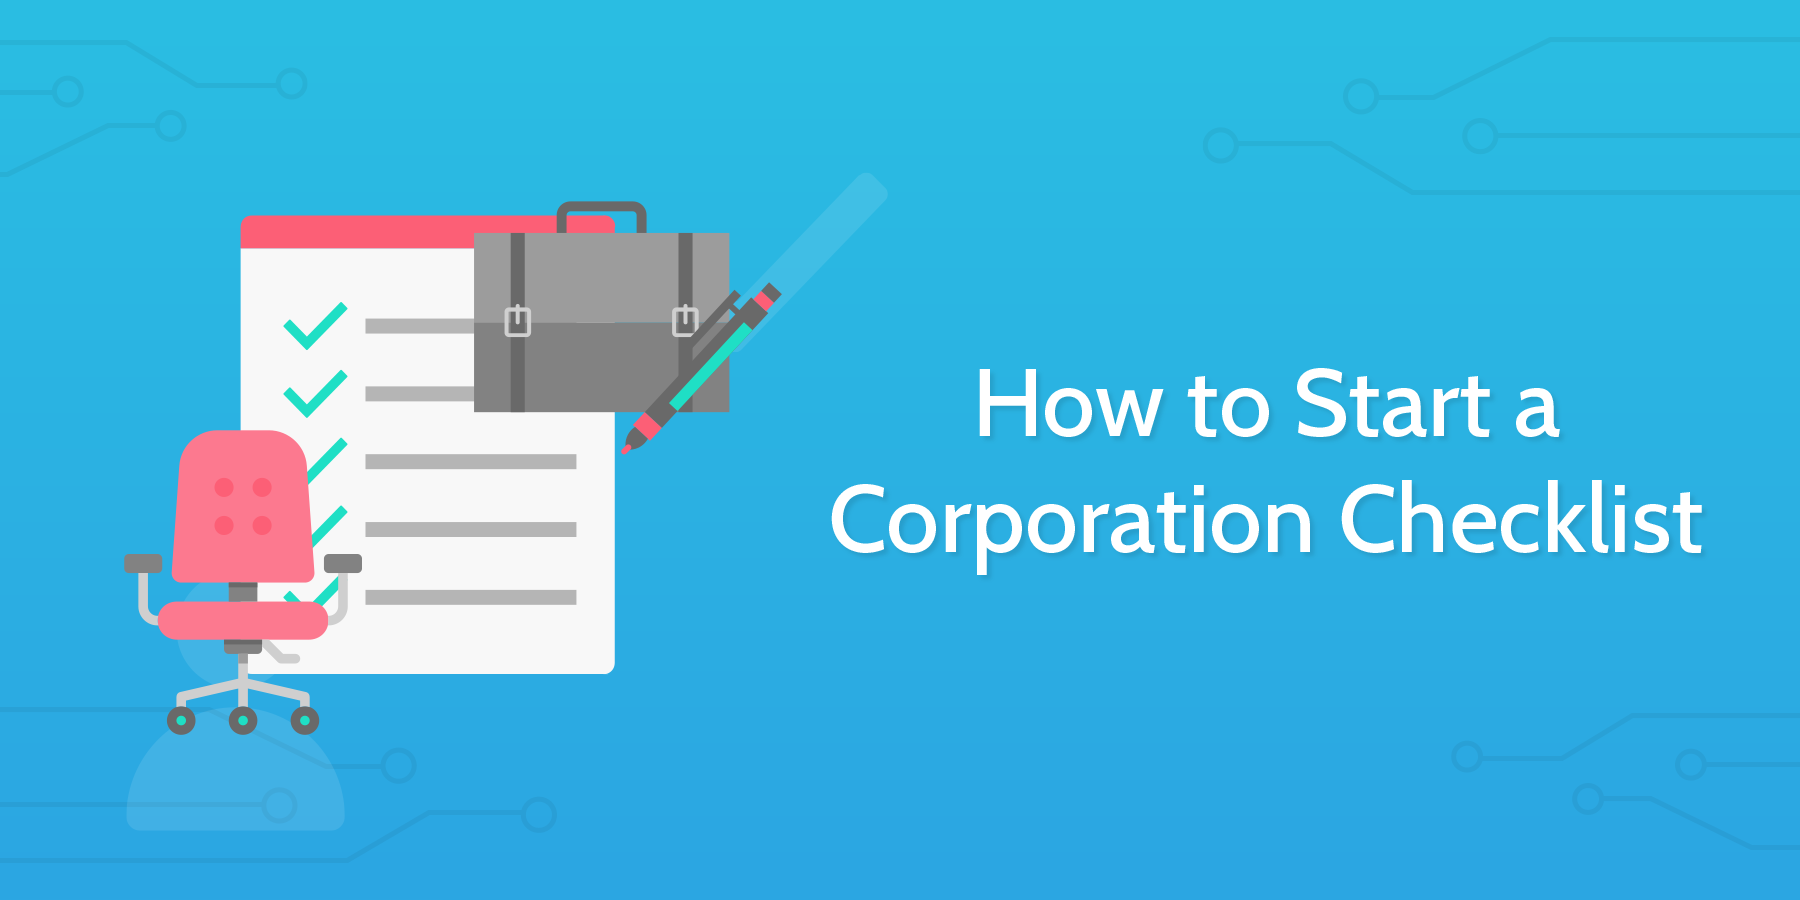 How to Start a Corporation Checklist